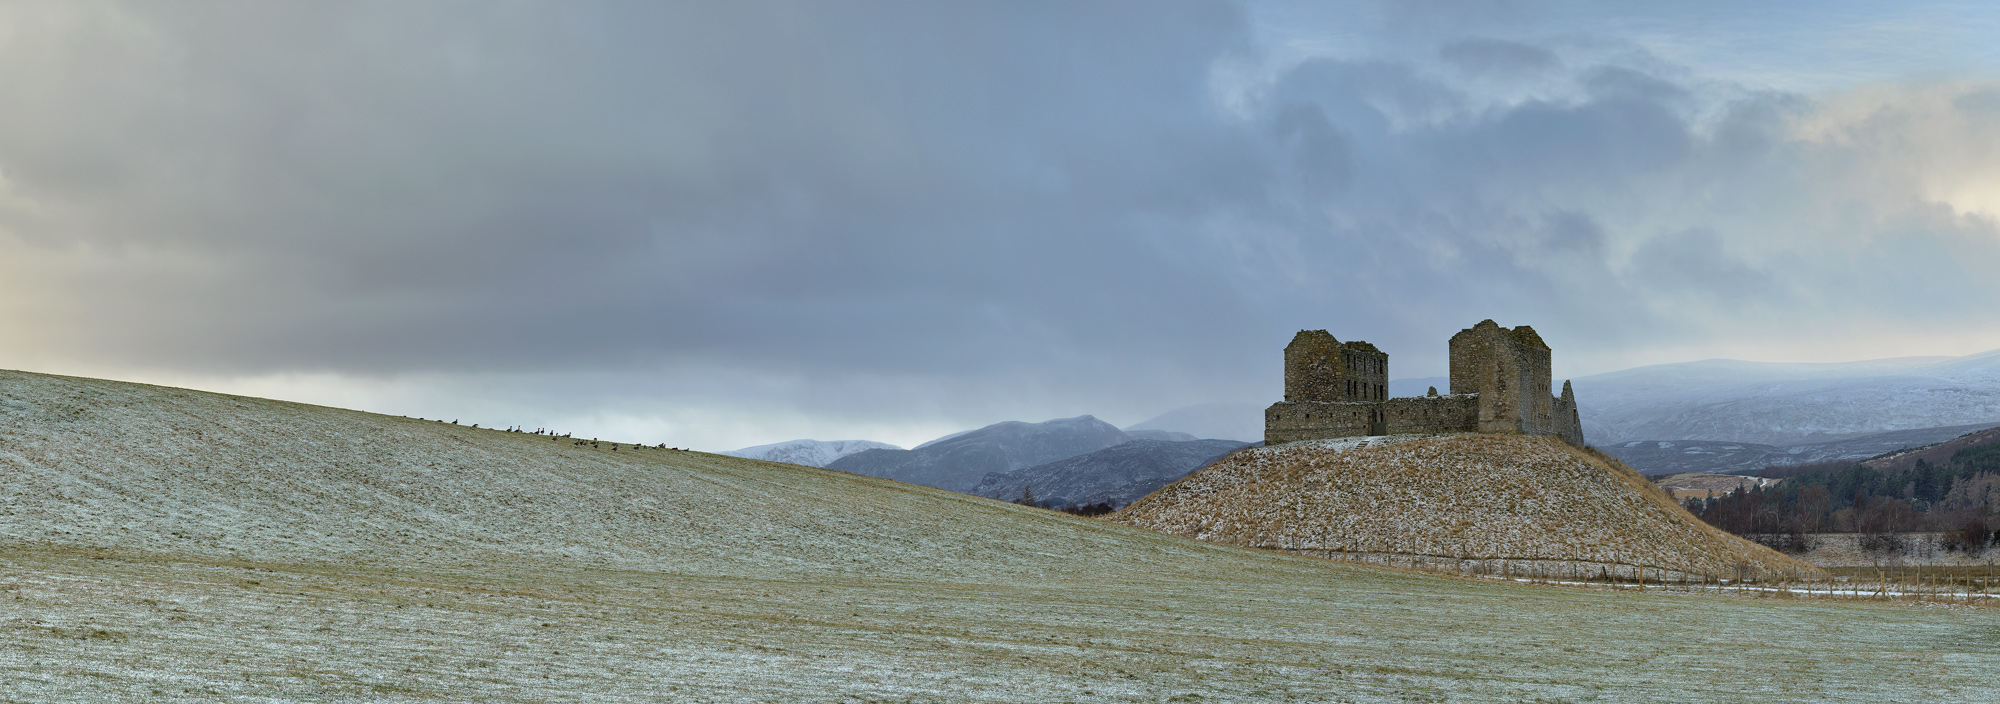 Geese Grazing Ruthven Barracks, view, panoramic, geese, field, grass, podium, dusting, snow, sky, mood, chill, winter, photo